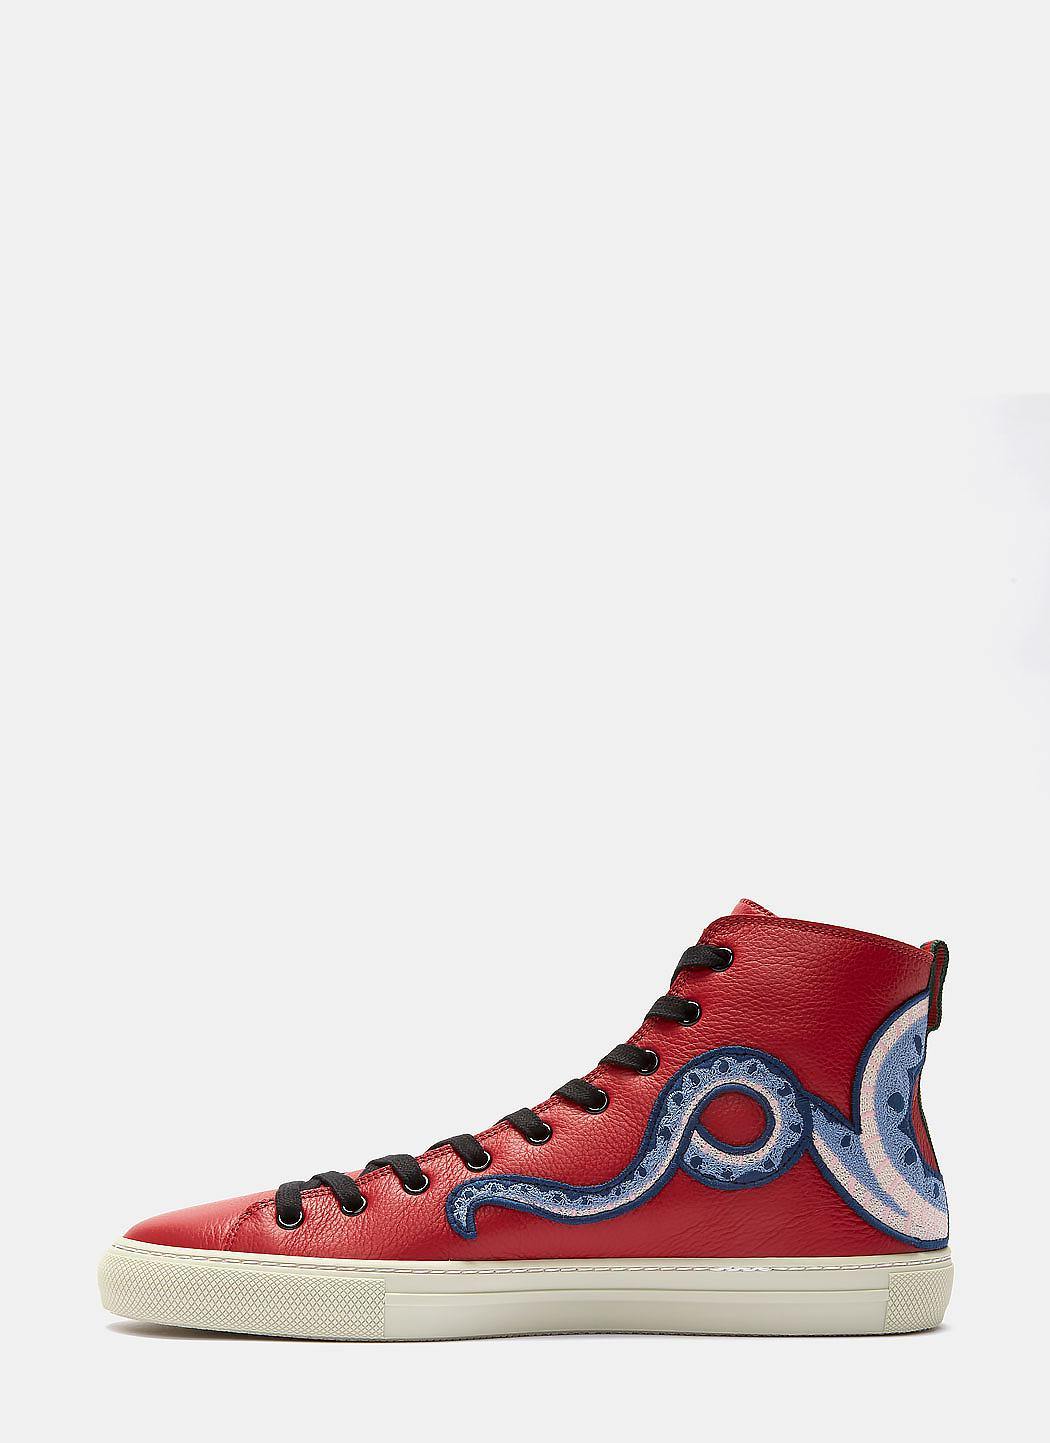 8bfbc9bb Men's Dragon Embroidered High-top Sneakers In Red